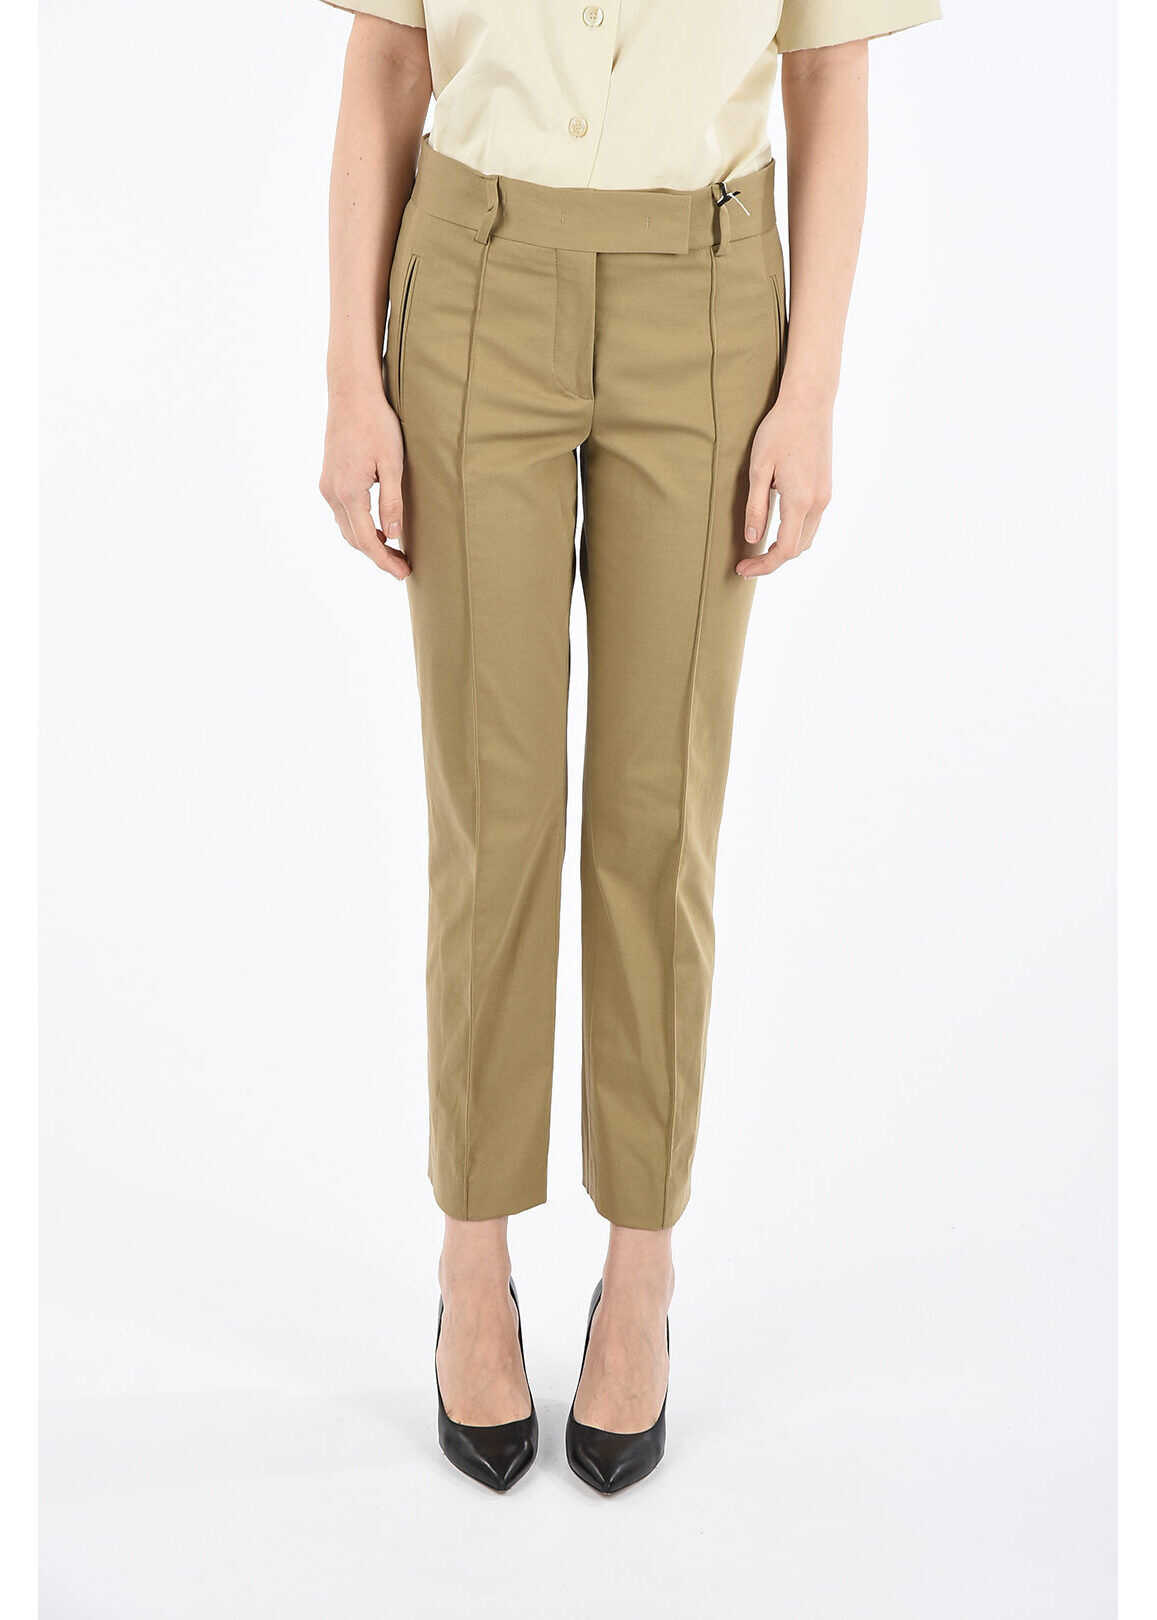 Salvatore Ferragamo Mid-rise waist single pleat pants BEIGE